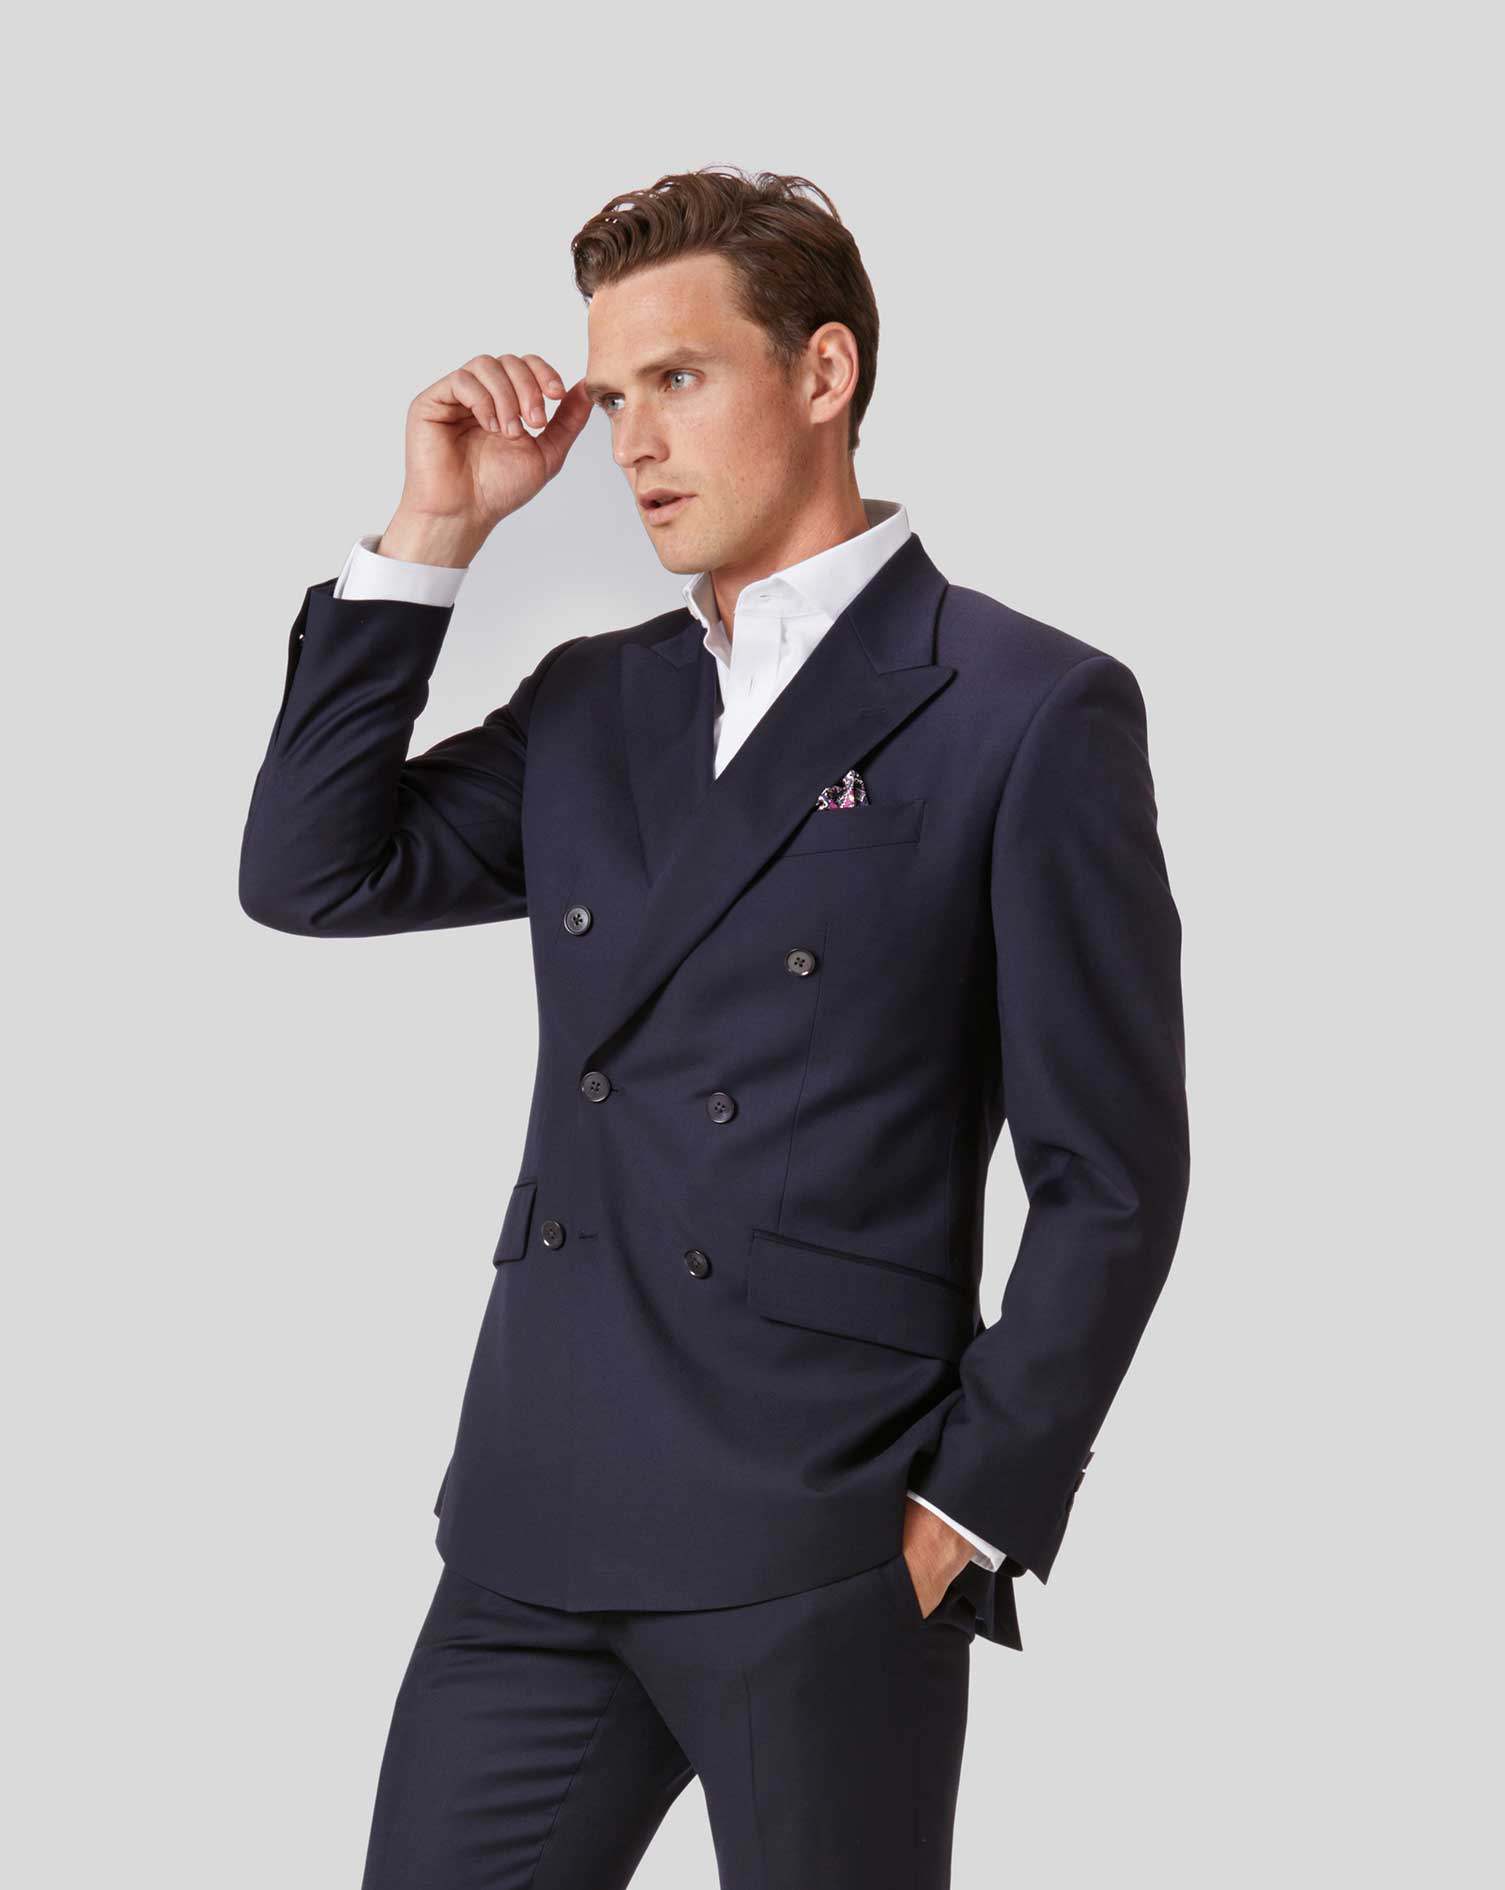 Wool Navy Slim Fit Double Breasted Twill Business Suit Jacket